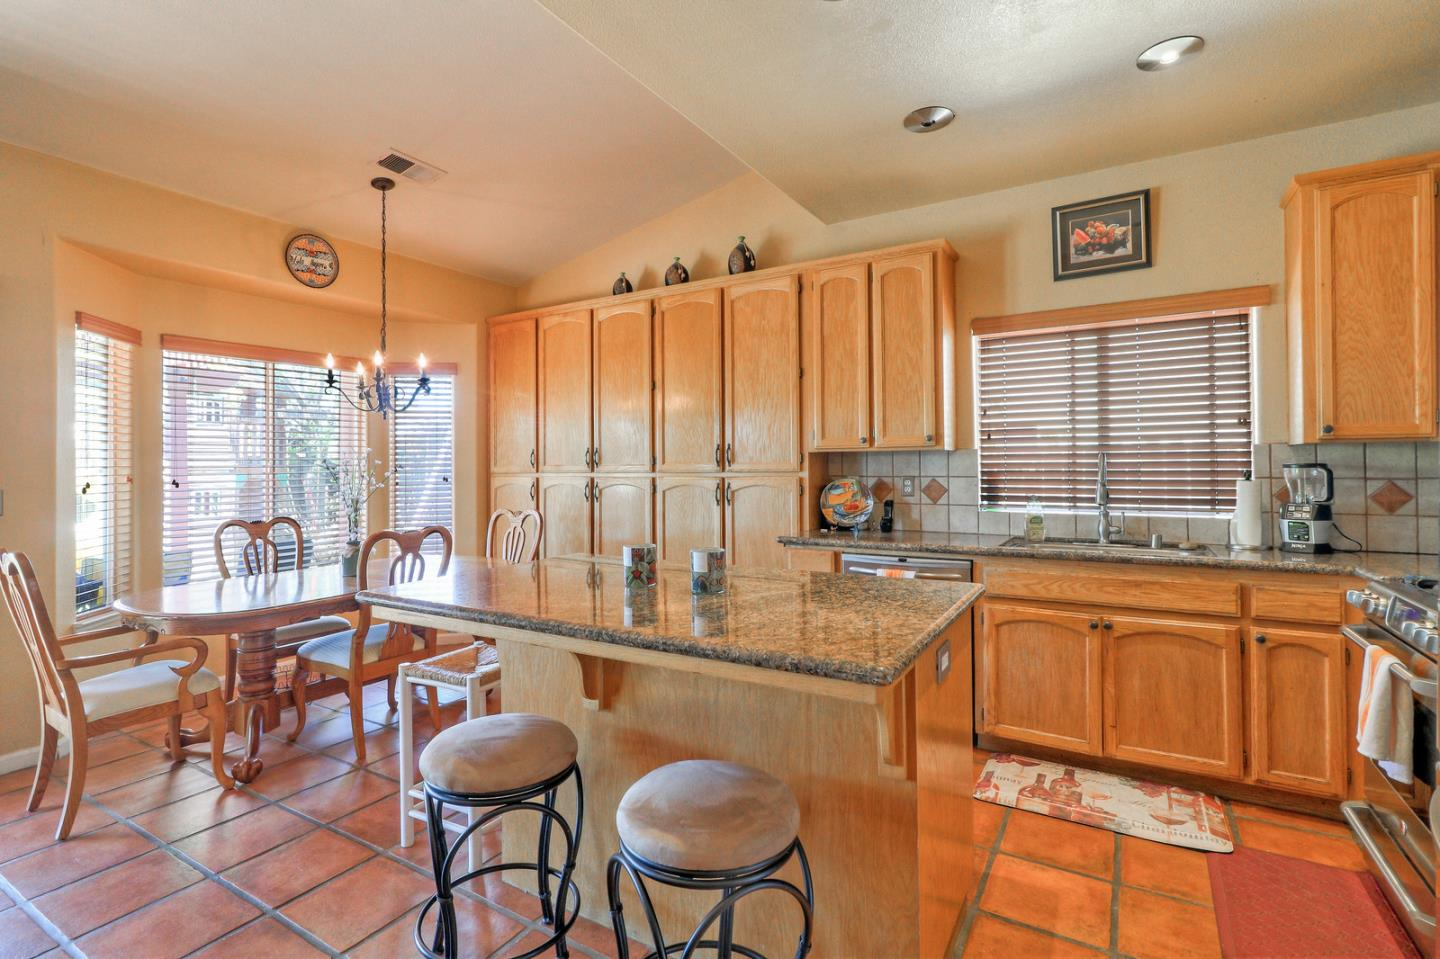 Detail Gallery Image 1 of 1 For 1260 Nez Perce Dr, Hollister, CA, 95023 - 4 Beds | 2 Baths